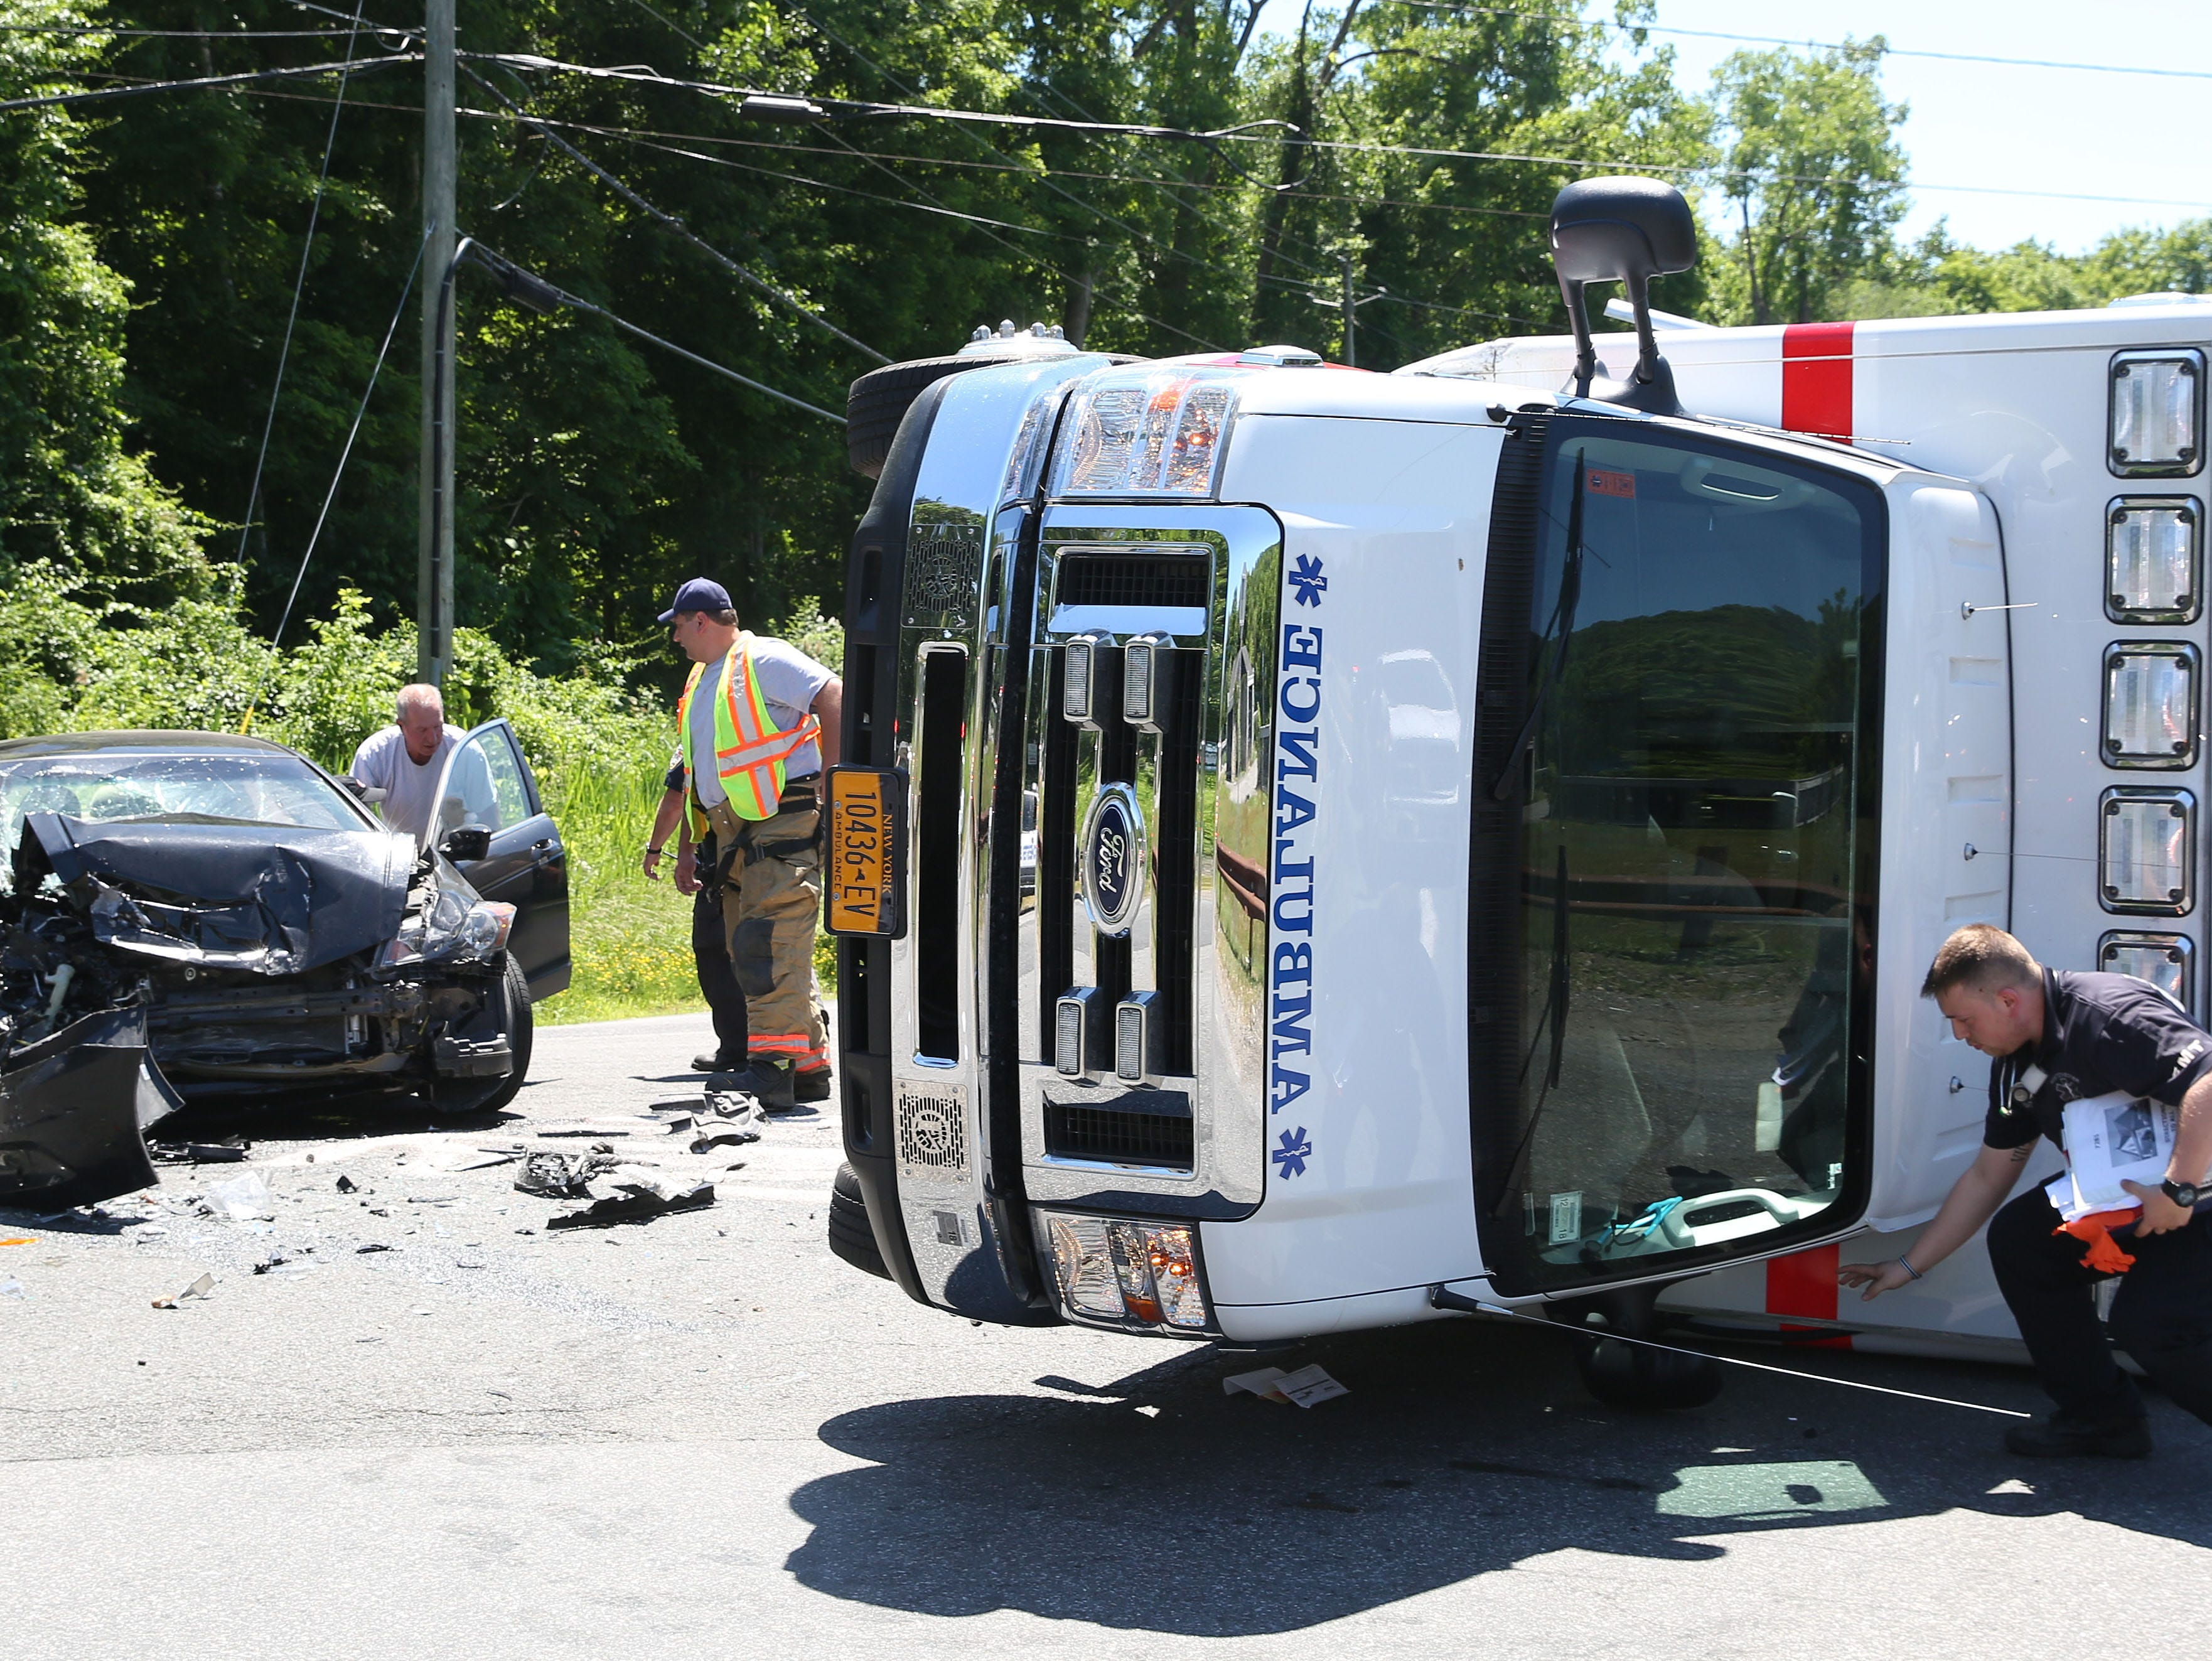 A North Salem ambulance collided with another vehicle at the intersection of Hardscrabble Road and Daniel Road in North Salem June 17, 2018. A total of three people suffered minor injuries.